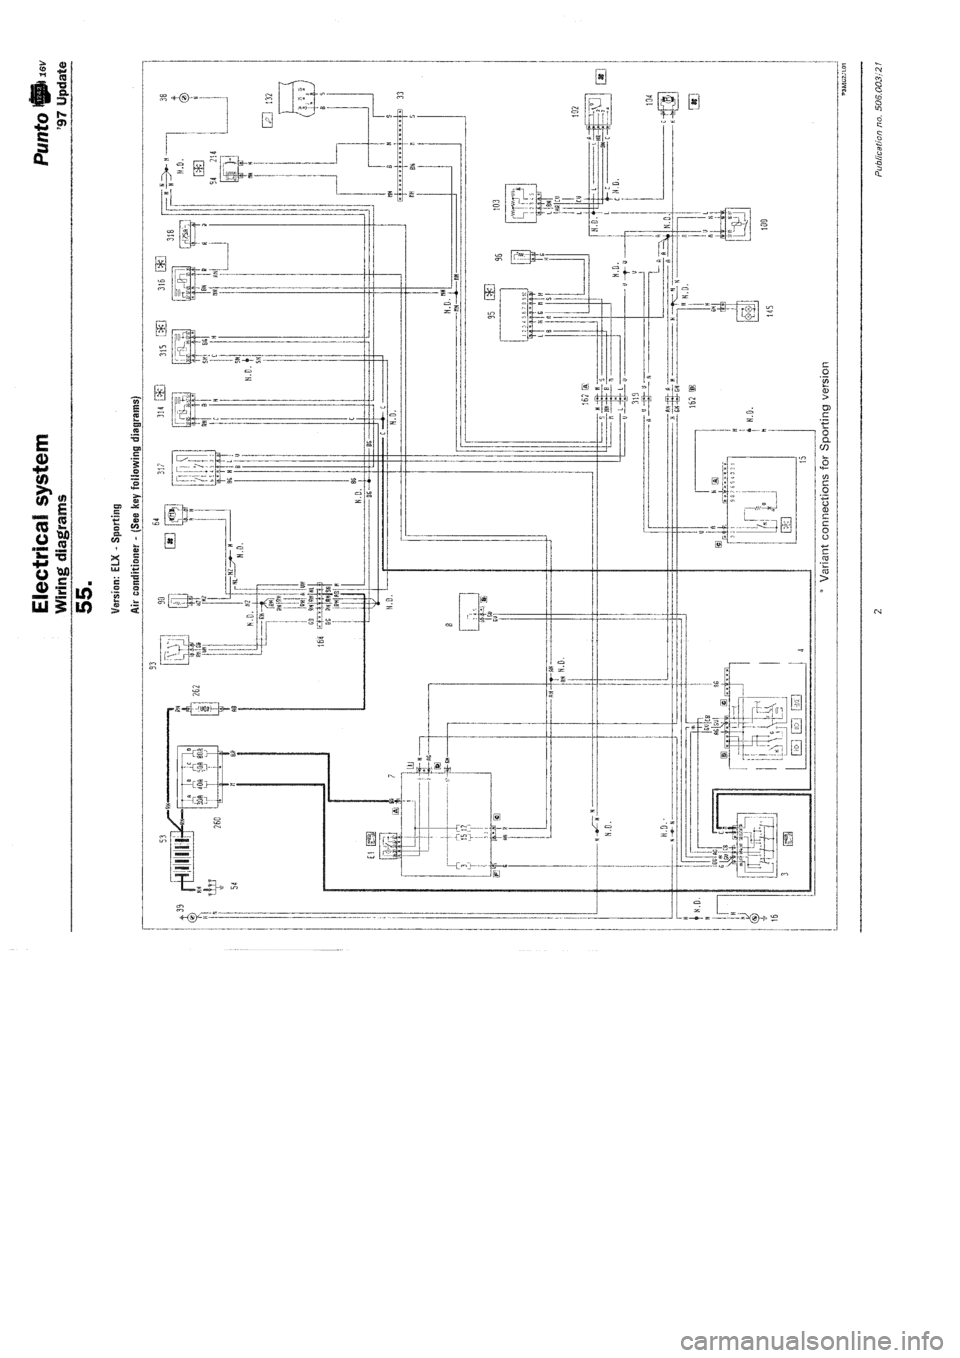 fiat punto audio wiring diagram fiat punto 1997 176 / 1.g wiring diagrams workshop manual